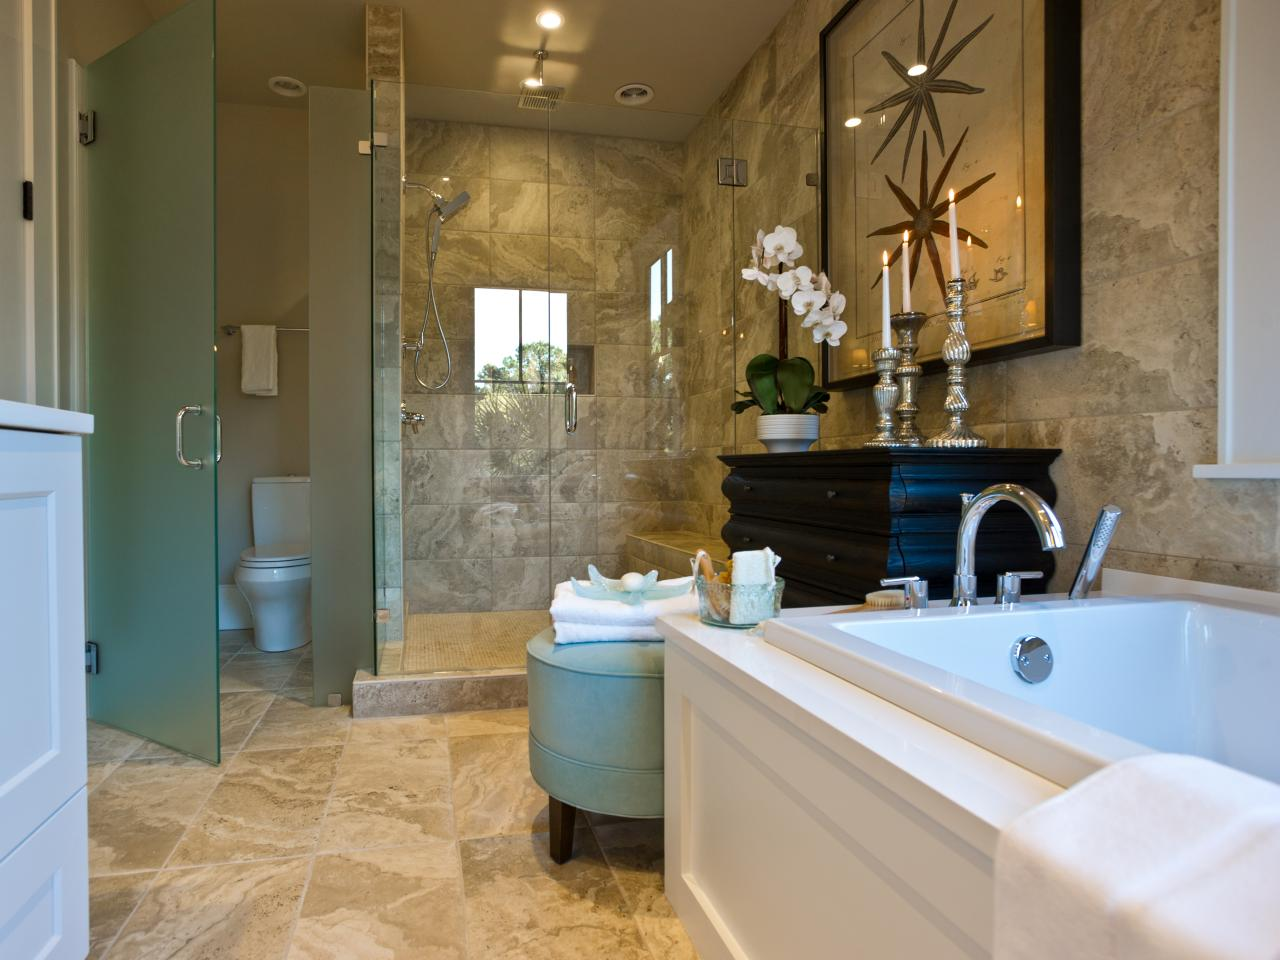 Hgtv dream home 2013 master bathroom pictures and video Master bathroom designs